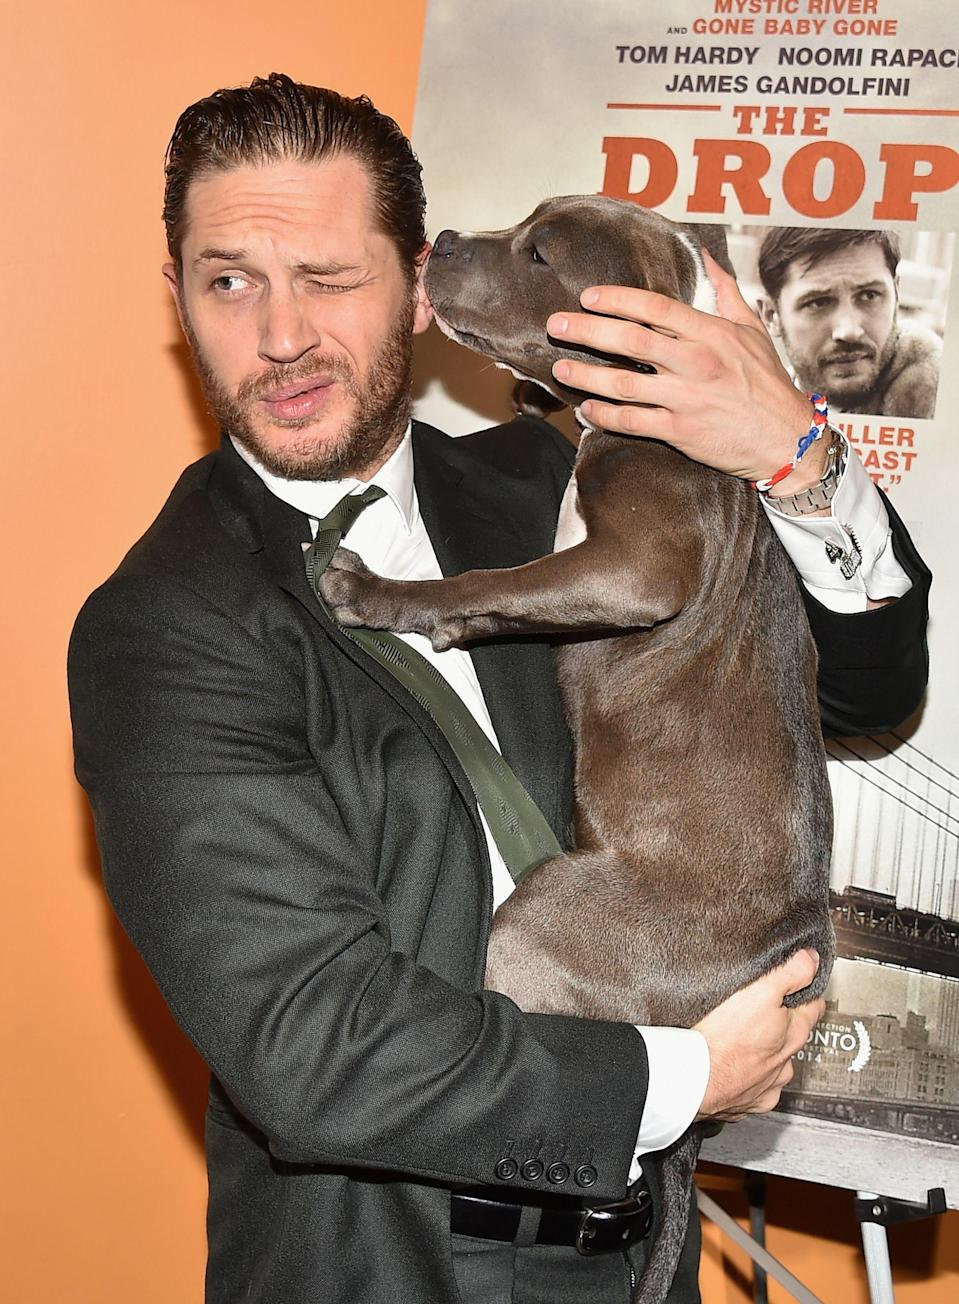 """<p>Celebrities, they're just like us - dog lovers.</p><p>For many an A-Lister, a dog is a loyal companion to accompany them on the road (or the red carpet, in Tom Hardy's case), serve as a protector and be a trusted confidante - they're hardly going to sell stories to the tabloids, now are they? </p><p>From <a href=""""https://www.elle.com/uk/life-and-culture/a29680479/ariana-grande-thank-u-next-anniversary/"""" rel=""""nofollow noopener"""" target=""""_blank"""" data-ylk=""""slk:Ariana Grande"""" class=""""link rapid-noclick-resp"""">Ariana Grande</a> to <a href=""""https://www.elle.com/uk/life-and-culture/culture/a29499538/jennifer-lawrence-wedding-cooke-maroney/"""" rel=""""nofollow noopener"""" target=""""_blank"""" data-ylk=""""slk:Jennifer Lawrence"""" class=""""link rapid-noclick-resp"""">Jennifer Lawrence</a> to <a href=""""https://www.elle.com/uk/life-and-culture/culture/a29768269/selena-gomez-weight-gain-lupus/"""" rel=""""nofollow noopener"""" target=""""_blank"""" data-ylk=""""slk:Selena Gomez"""" class=""""link rapid-noclick-resp"""">Selena Gomez</a> to <a href=""""https://www.elle.com/uk/life-and-culture/g28244250/nick-jonas-priyanka-chopra-best-pictures/"""" rel=""""nofollow noopener"""" target=""""_blank"""" data-ylk=""""slk:Priyanka Chopra and Nick Jonas"""" class=""""link rapid-noclick-resp"""">Priyanka Chopra and Nick Jonas</a>, celebrities love their dogs and the proof is in the picture...</p>"""